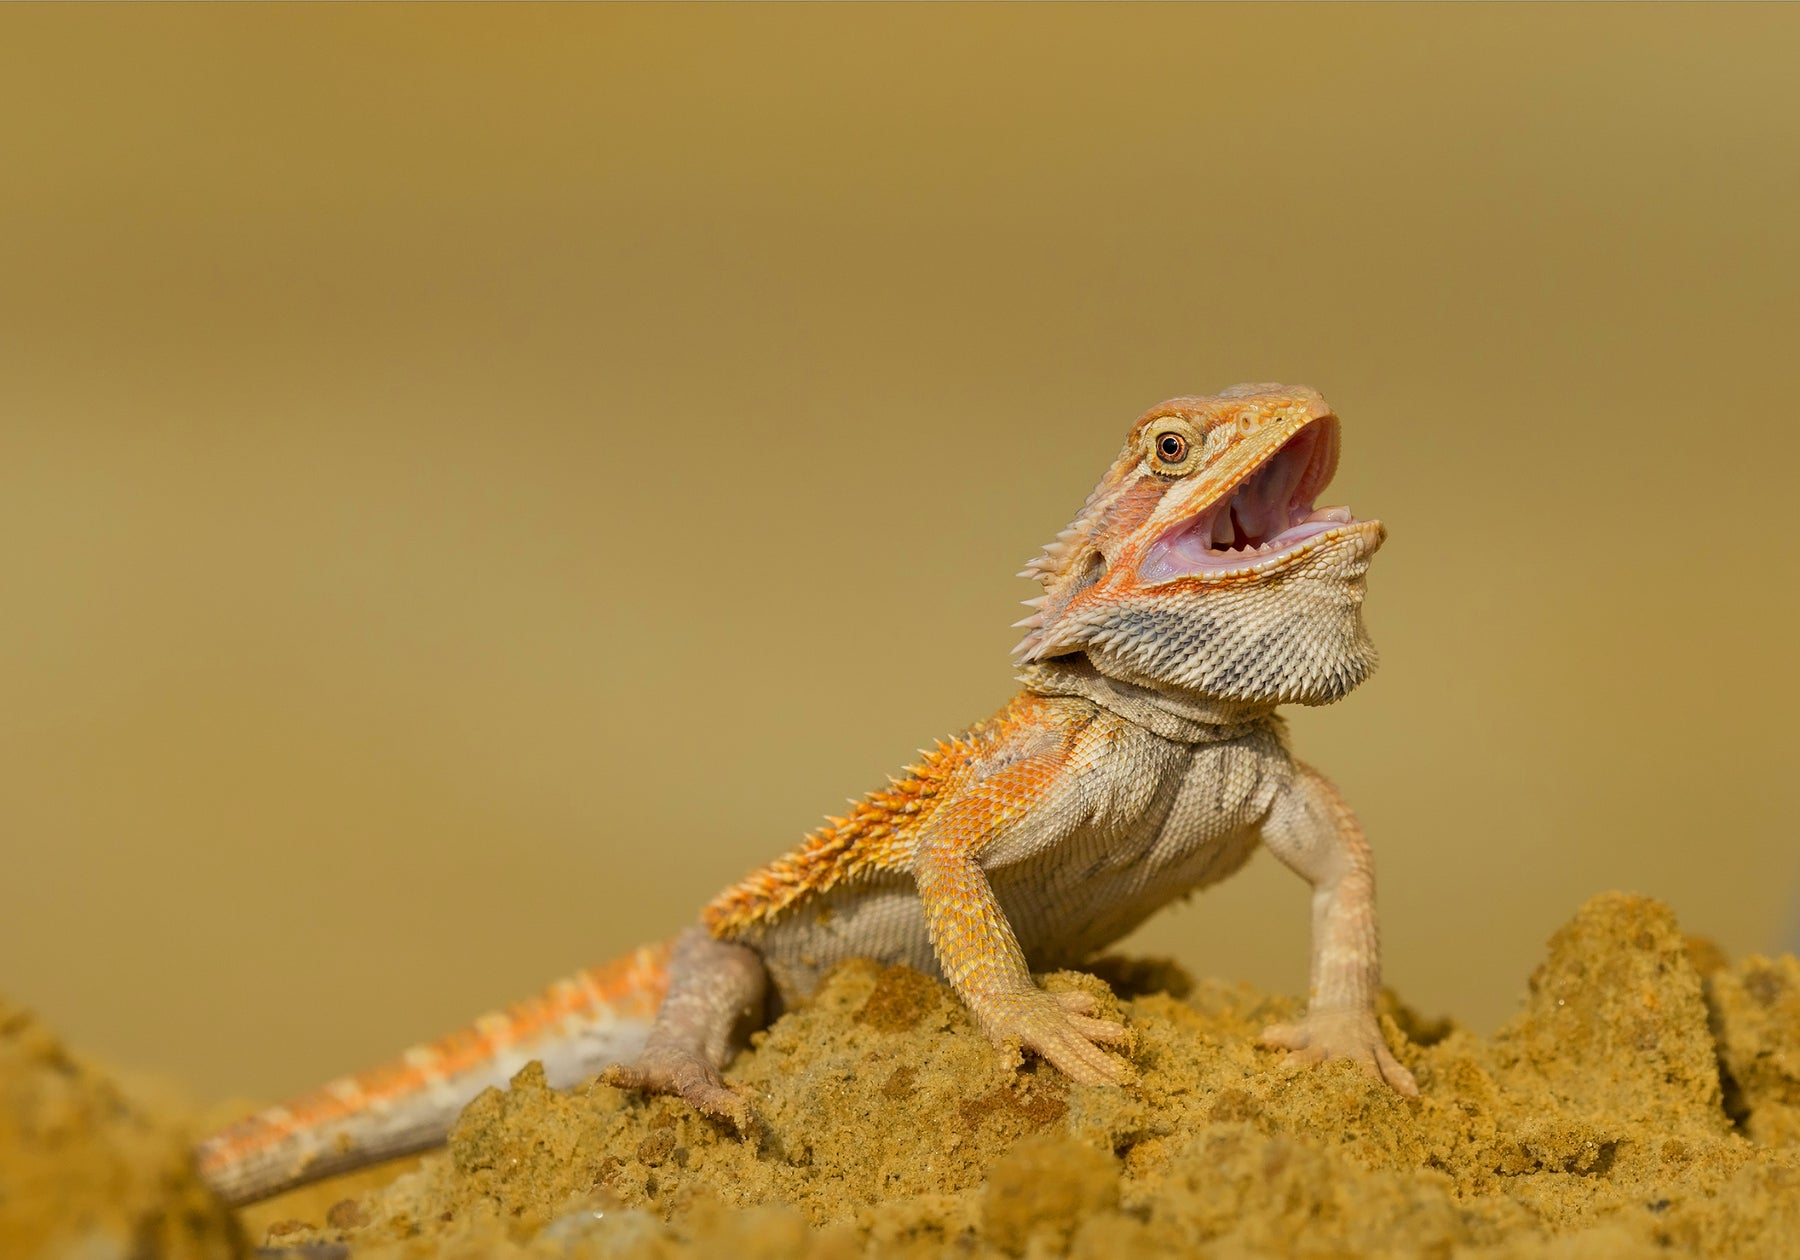 Can Bearded Dragon Eat Raw Meat?